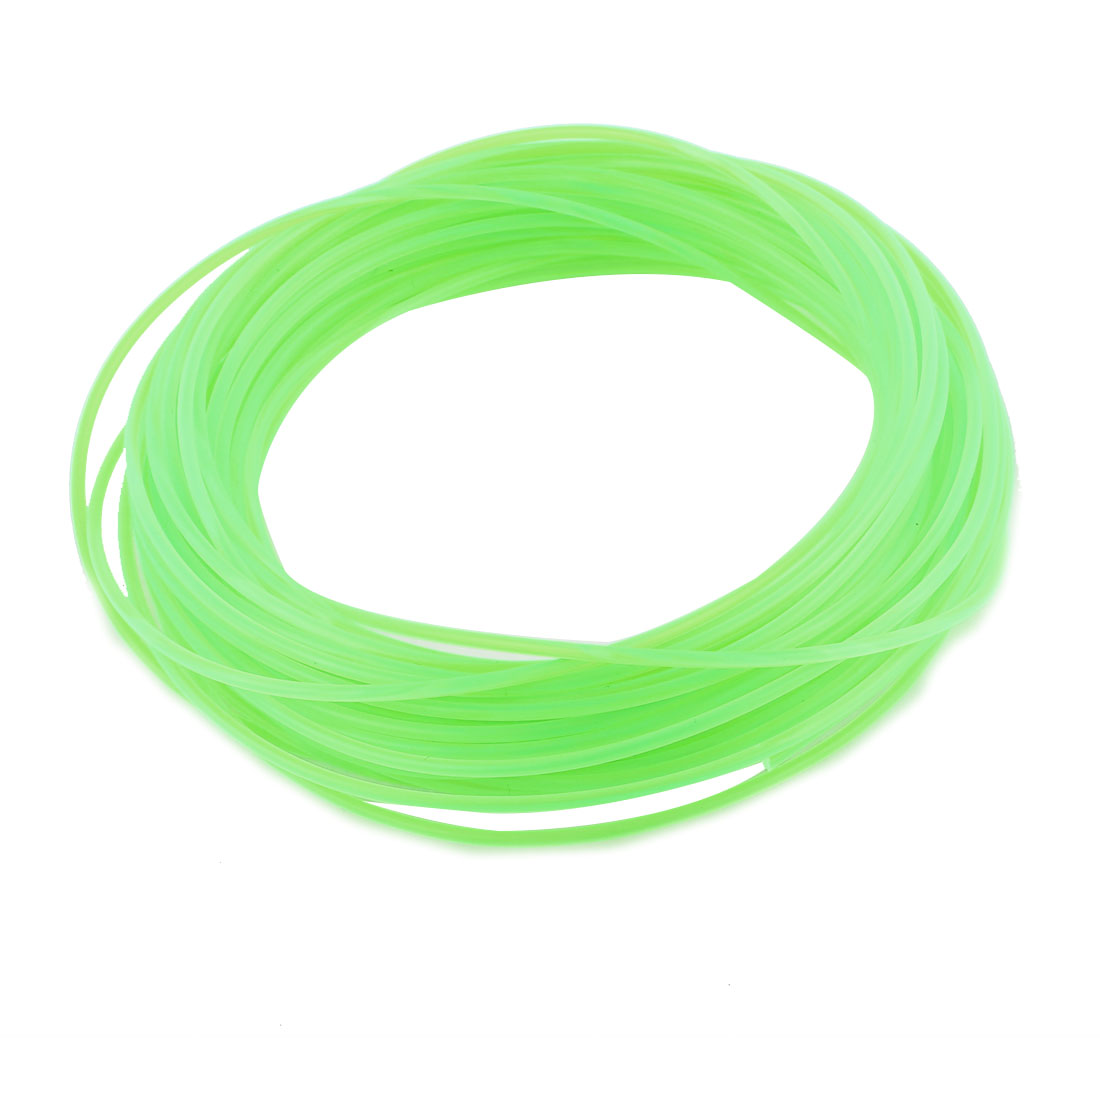 10m 3D Printer Pen Painting Filament Refills ABS Printing Material Transparent Green